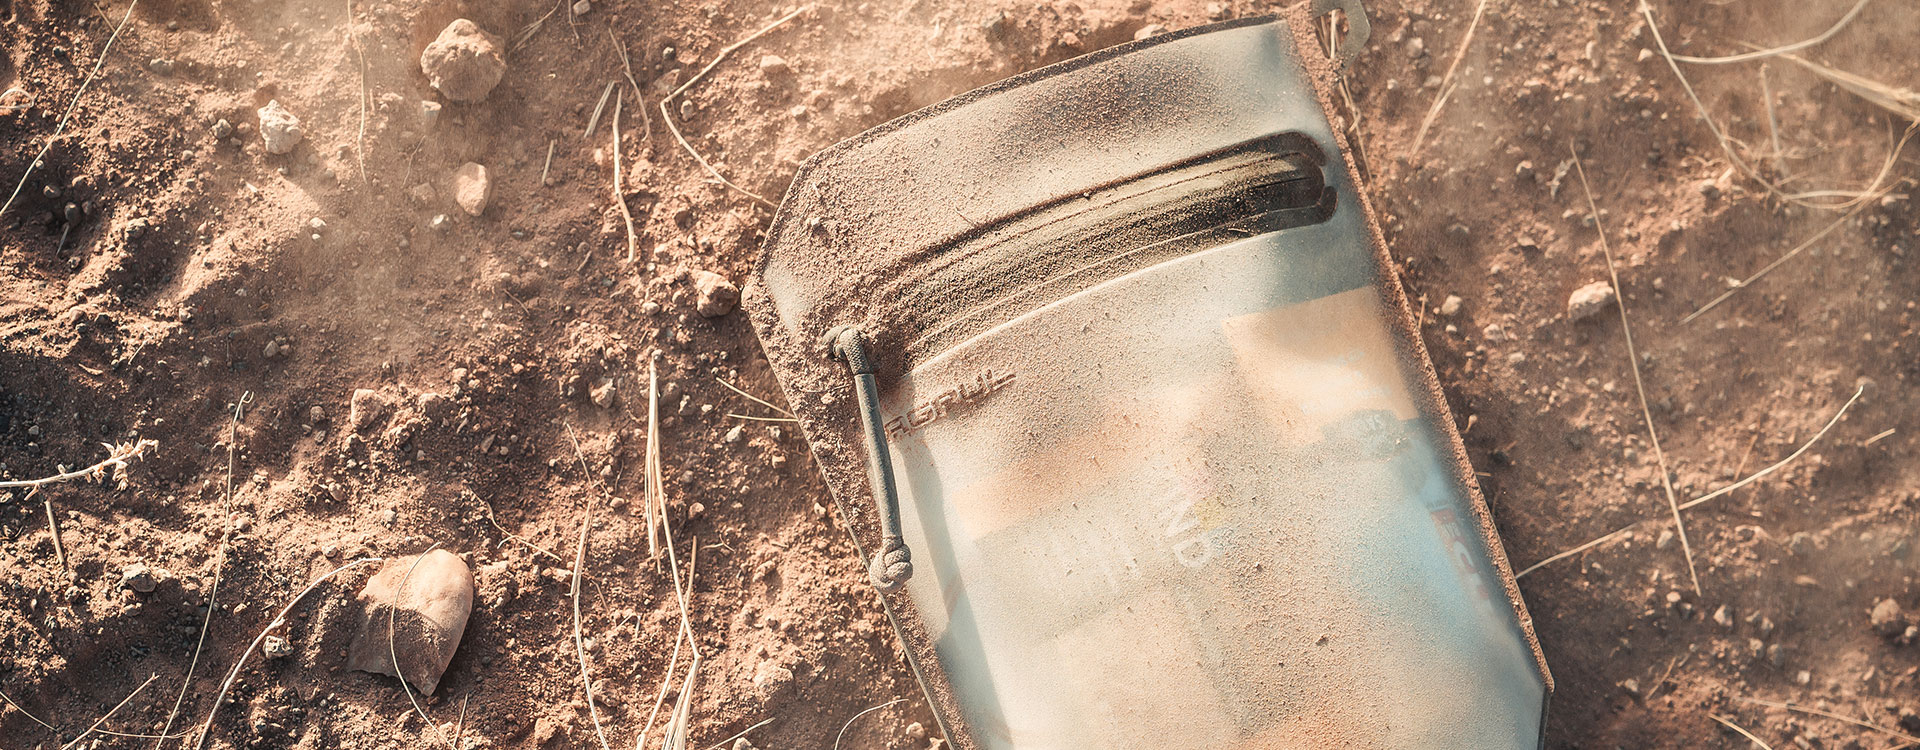 Magpul DAKA Volume Pouch on ground covered in dirt, full of misc camping items